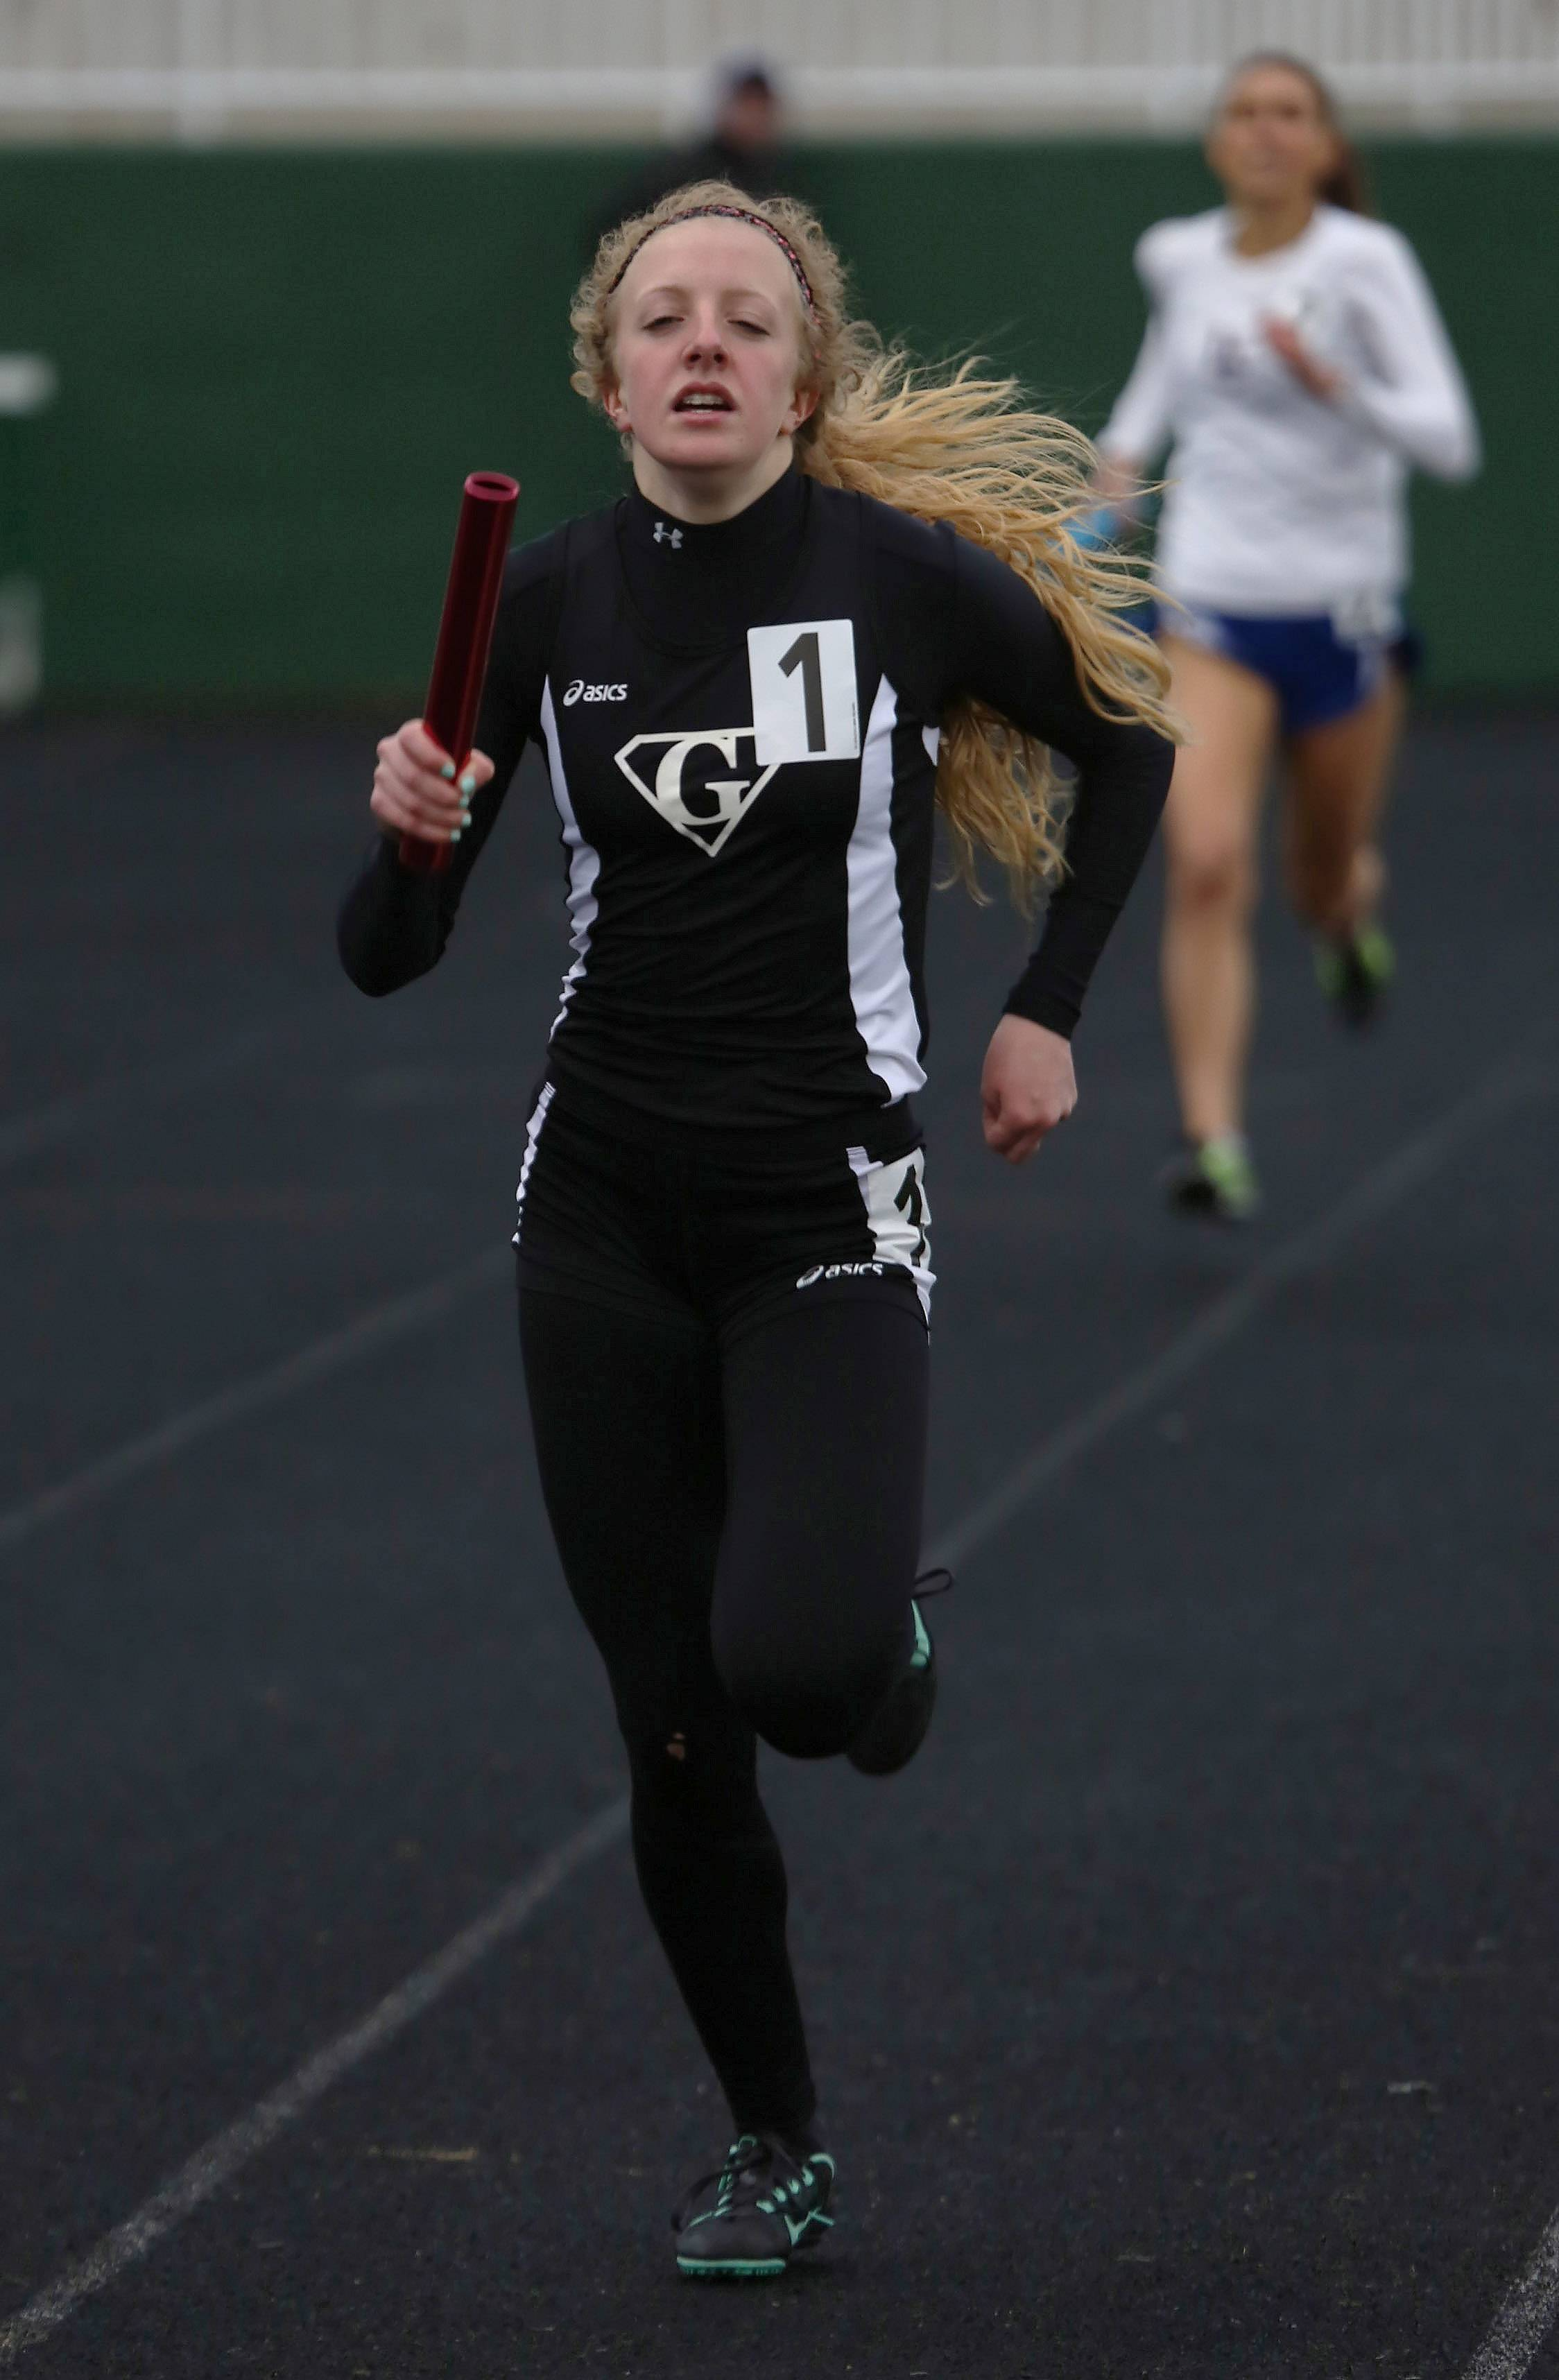 Grant runner Lauren Troemel finishes her final leg of the 4x800-meter relay during the Lake County Invite on Thursday at Grayslake Central.